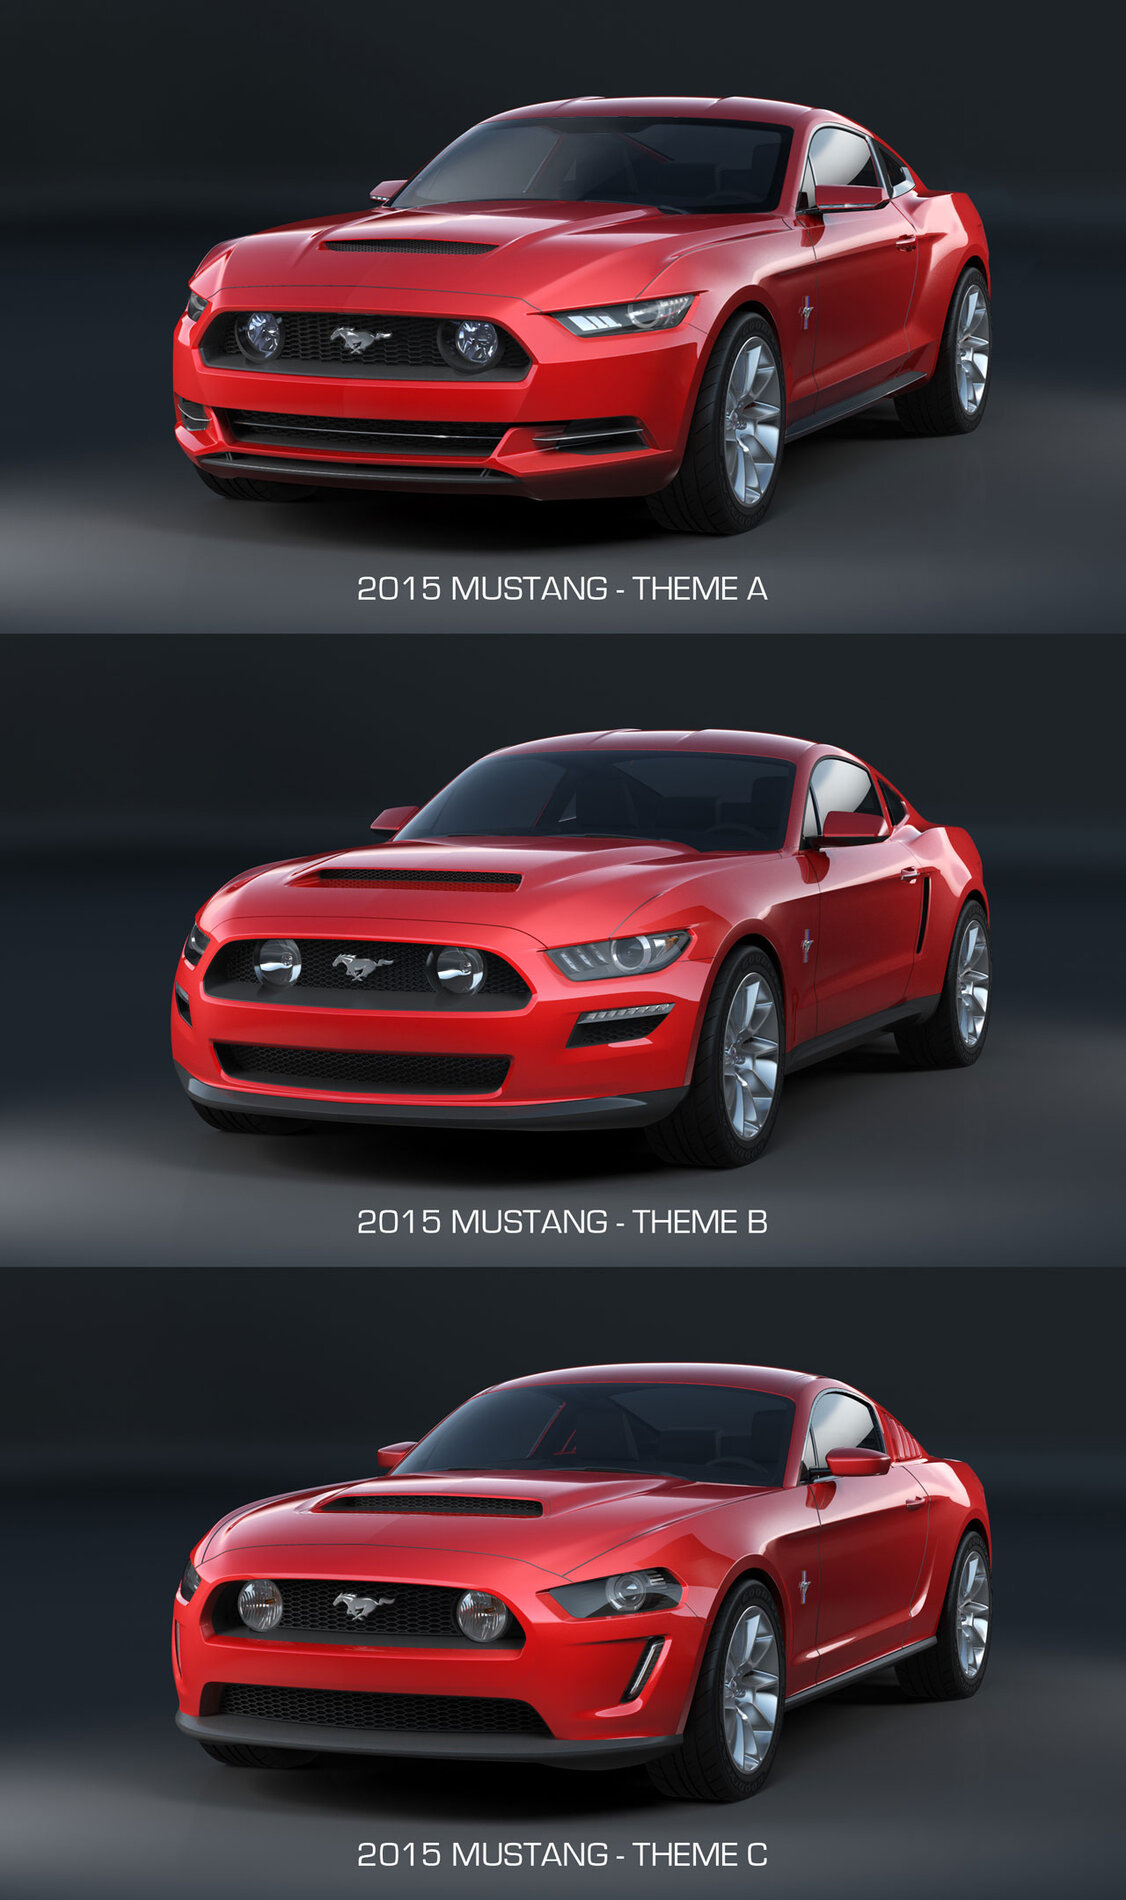 04-2015-Ford-Mustang-Design-Theme-Comparison-Front-end (1).jpg